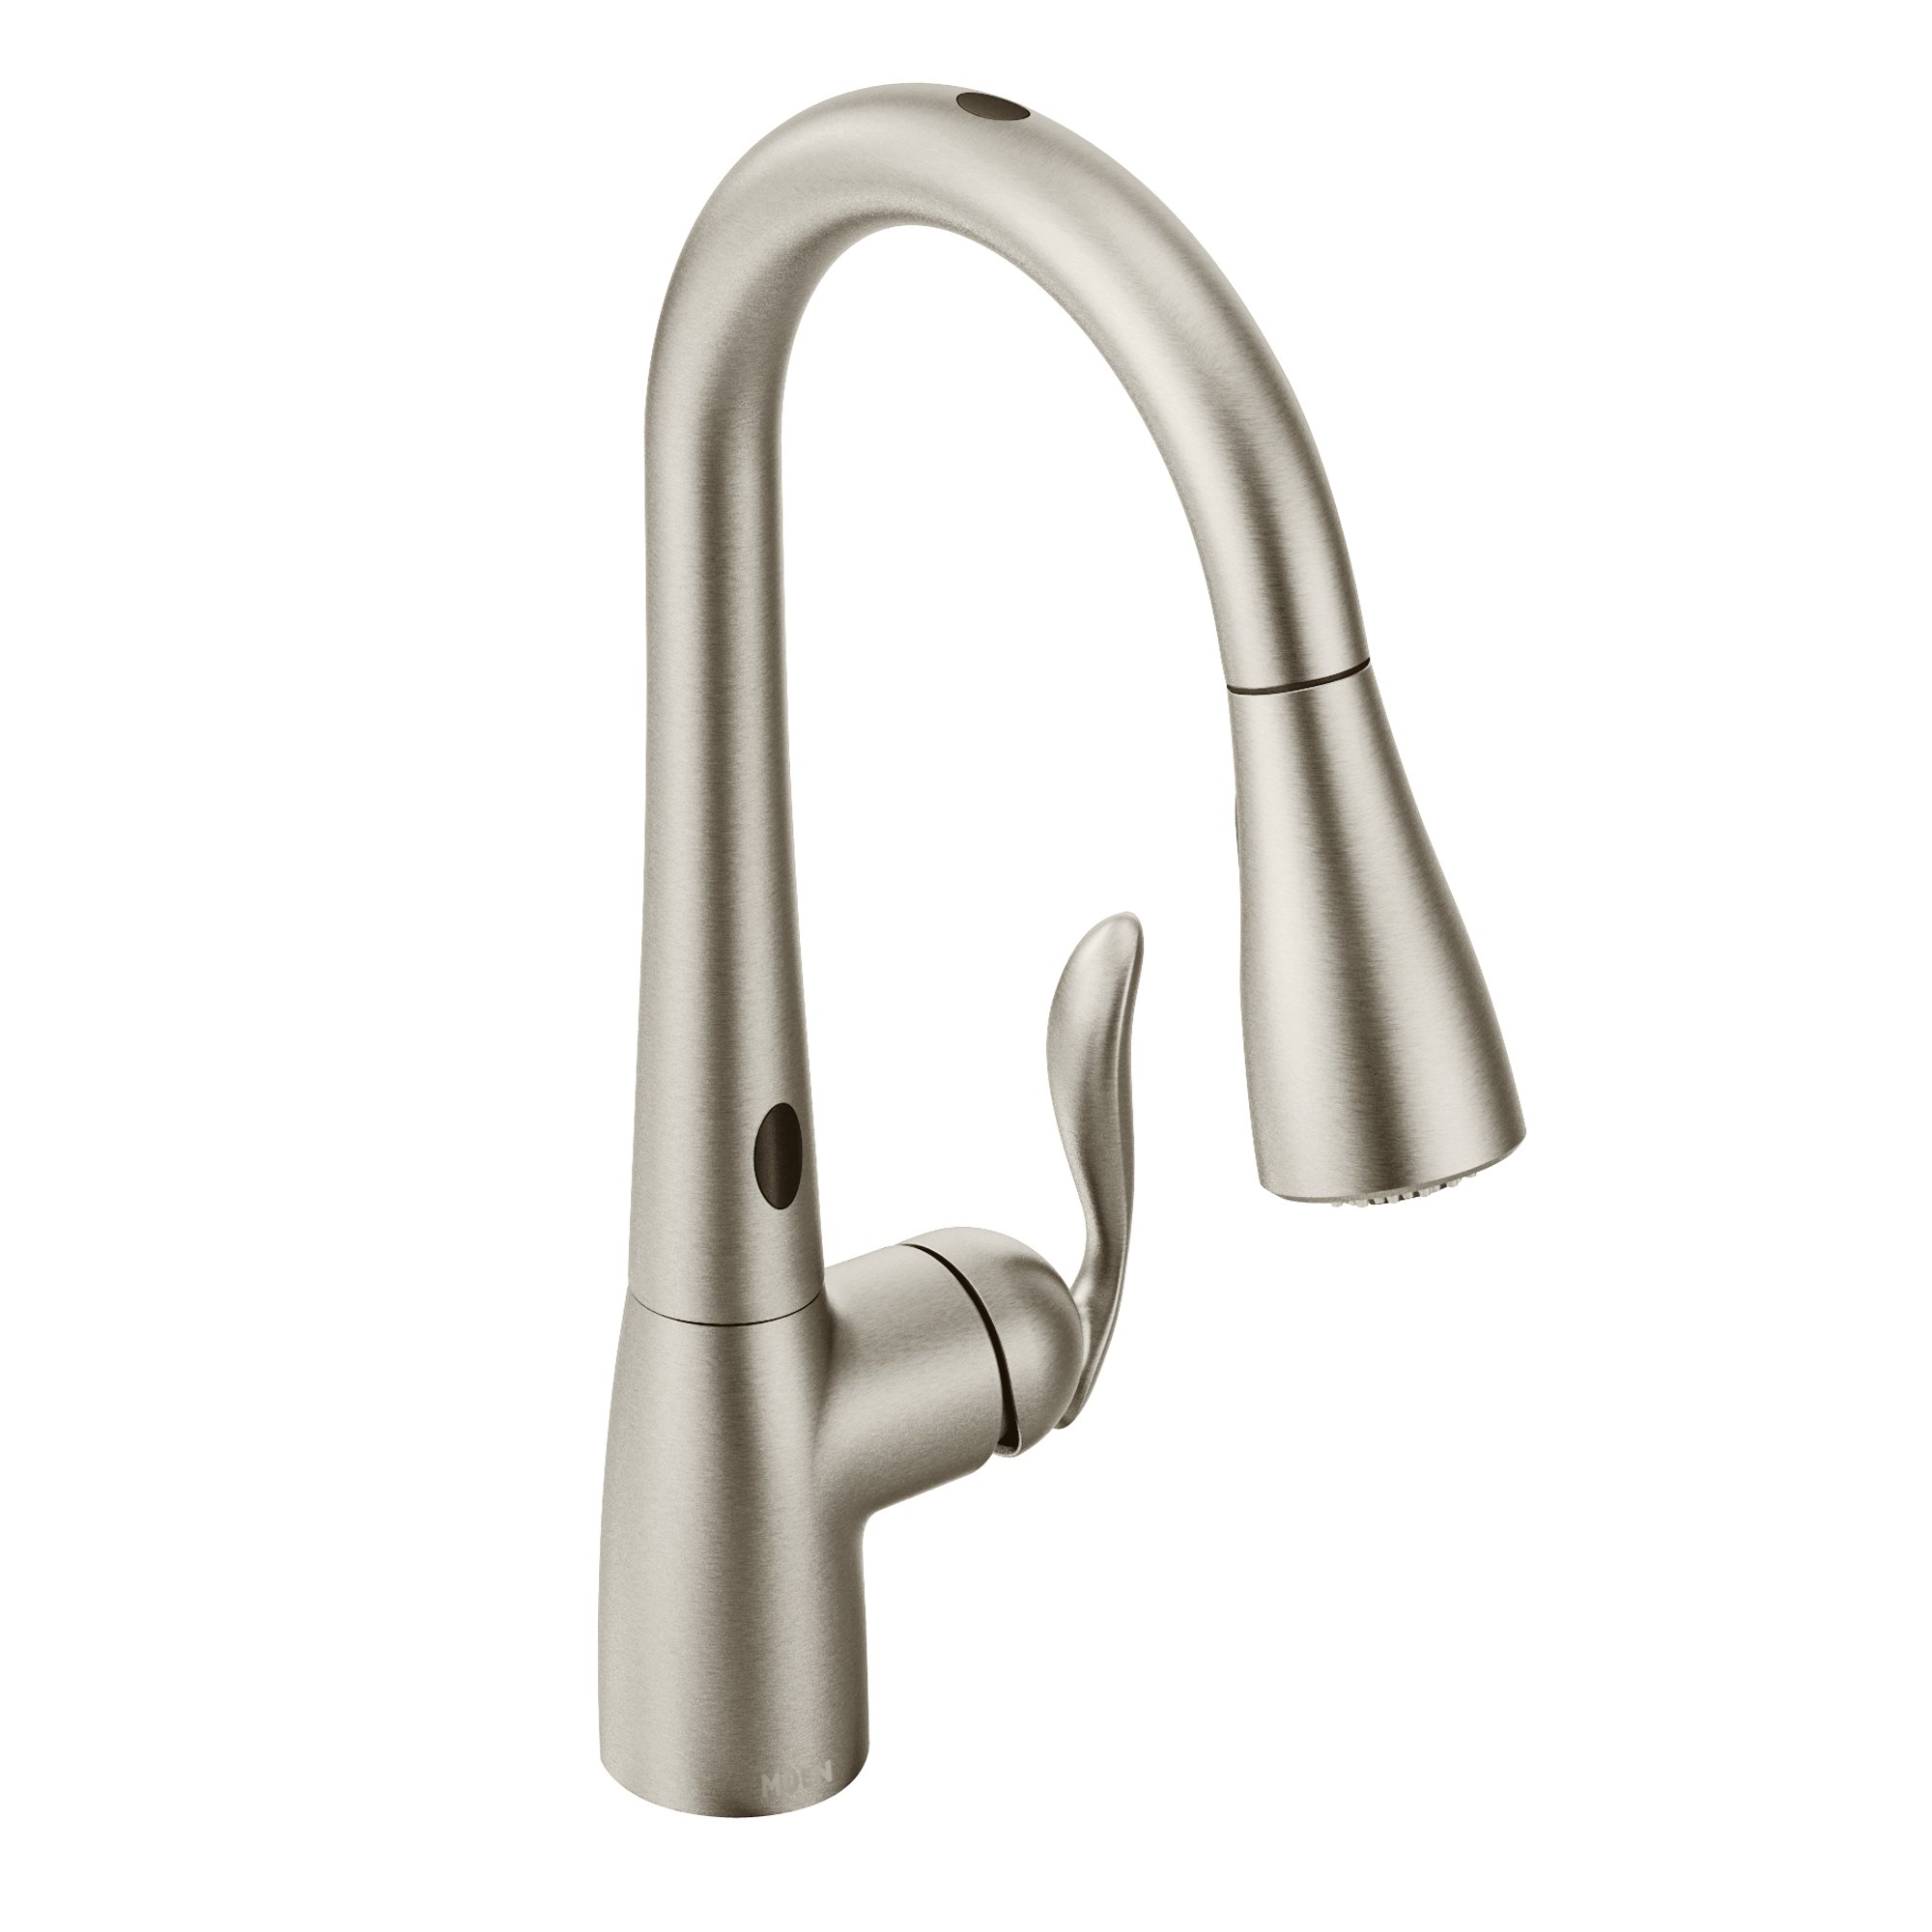 down faucet kitchen single sellette kpf top function com in handle sprayhead kraususa rated dual pull kraus faucets with finishs